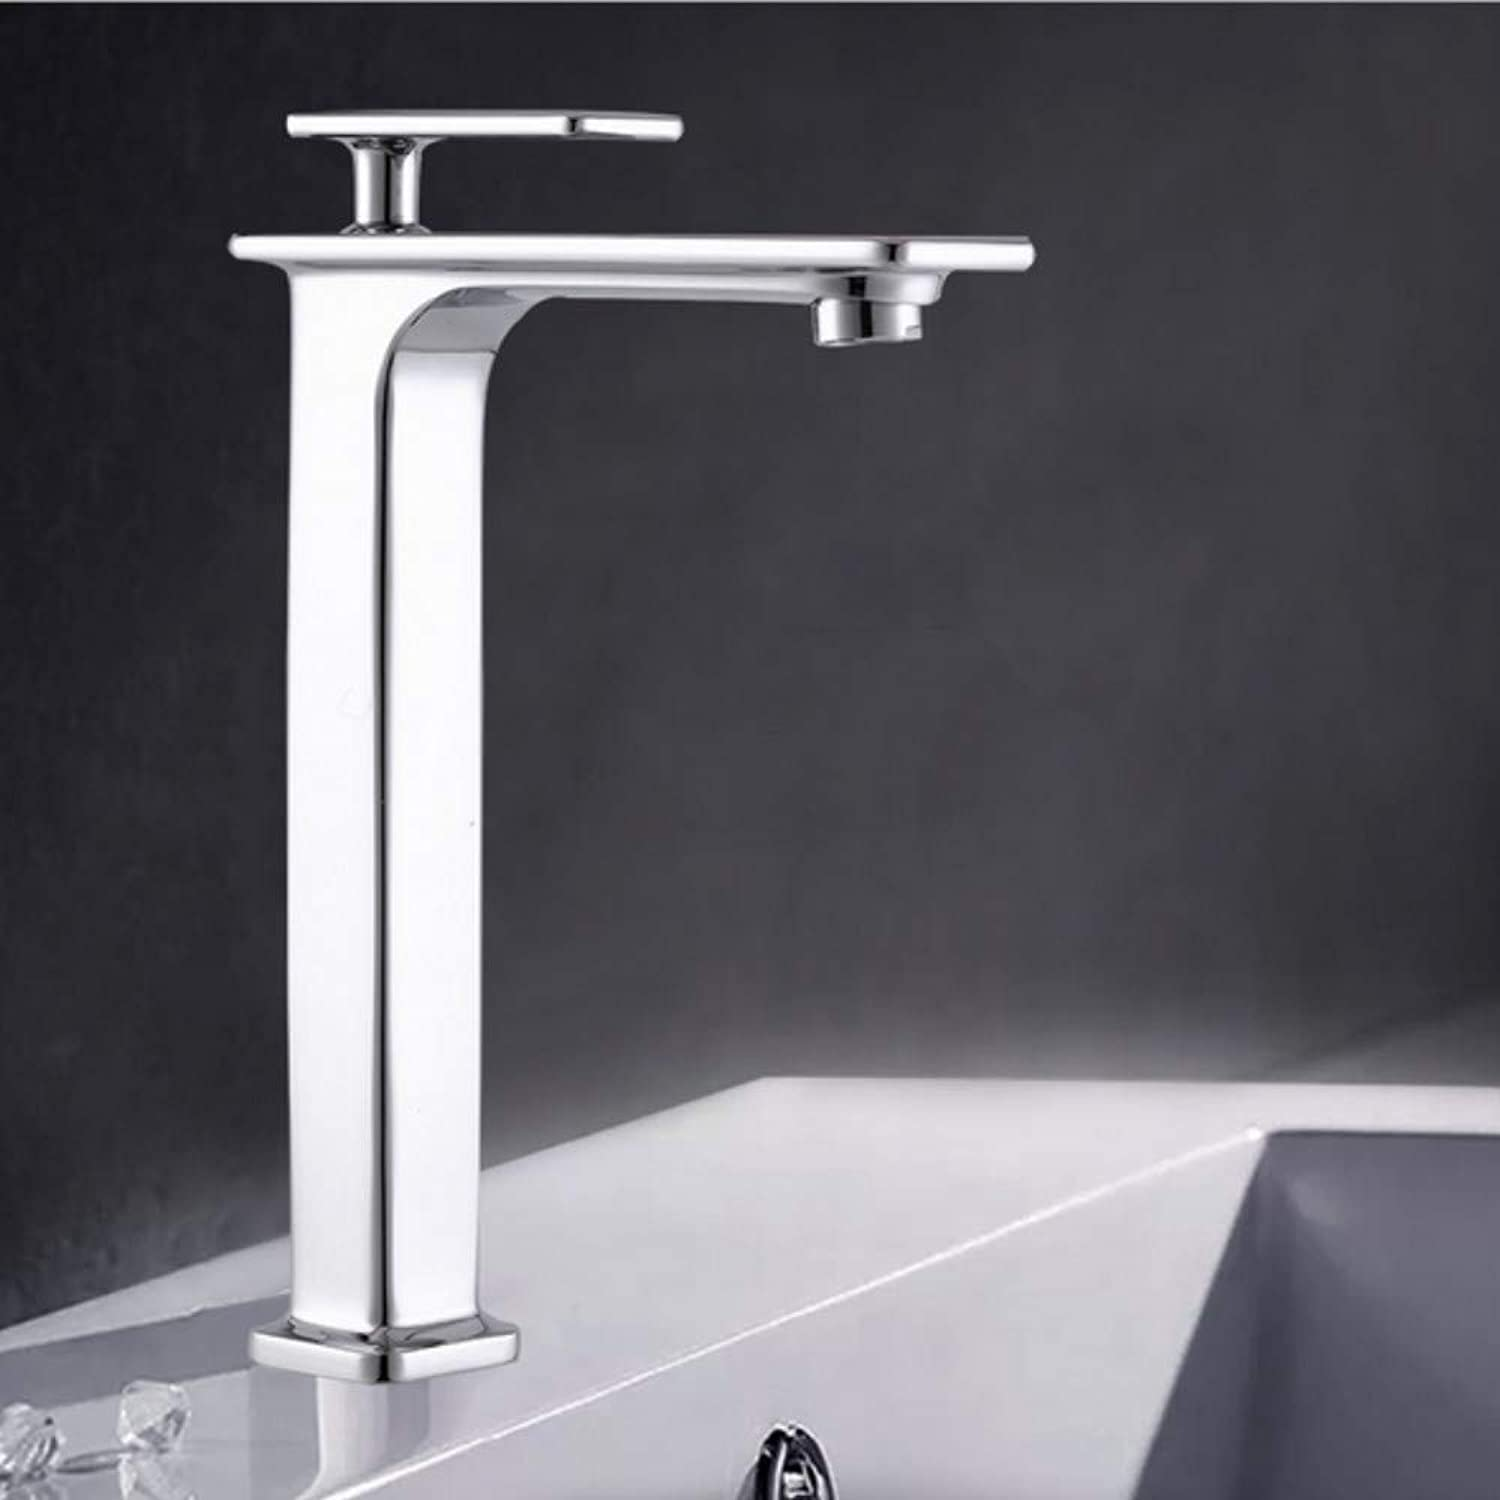 Xiujie Faucet Bathroom Basin Mixer Single-Connected Hot and Cold Water Faucet Lead-Free Copper Wash Basin Faucet